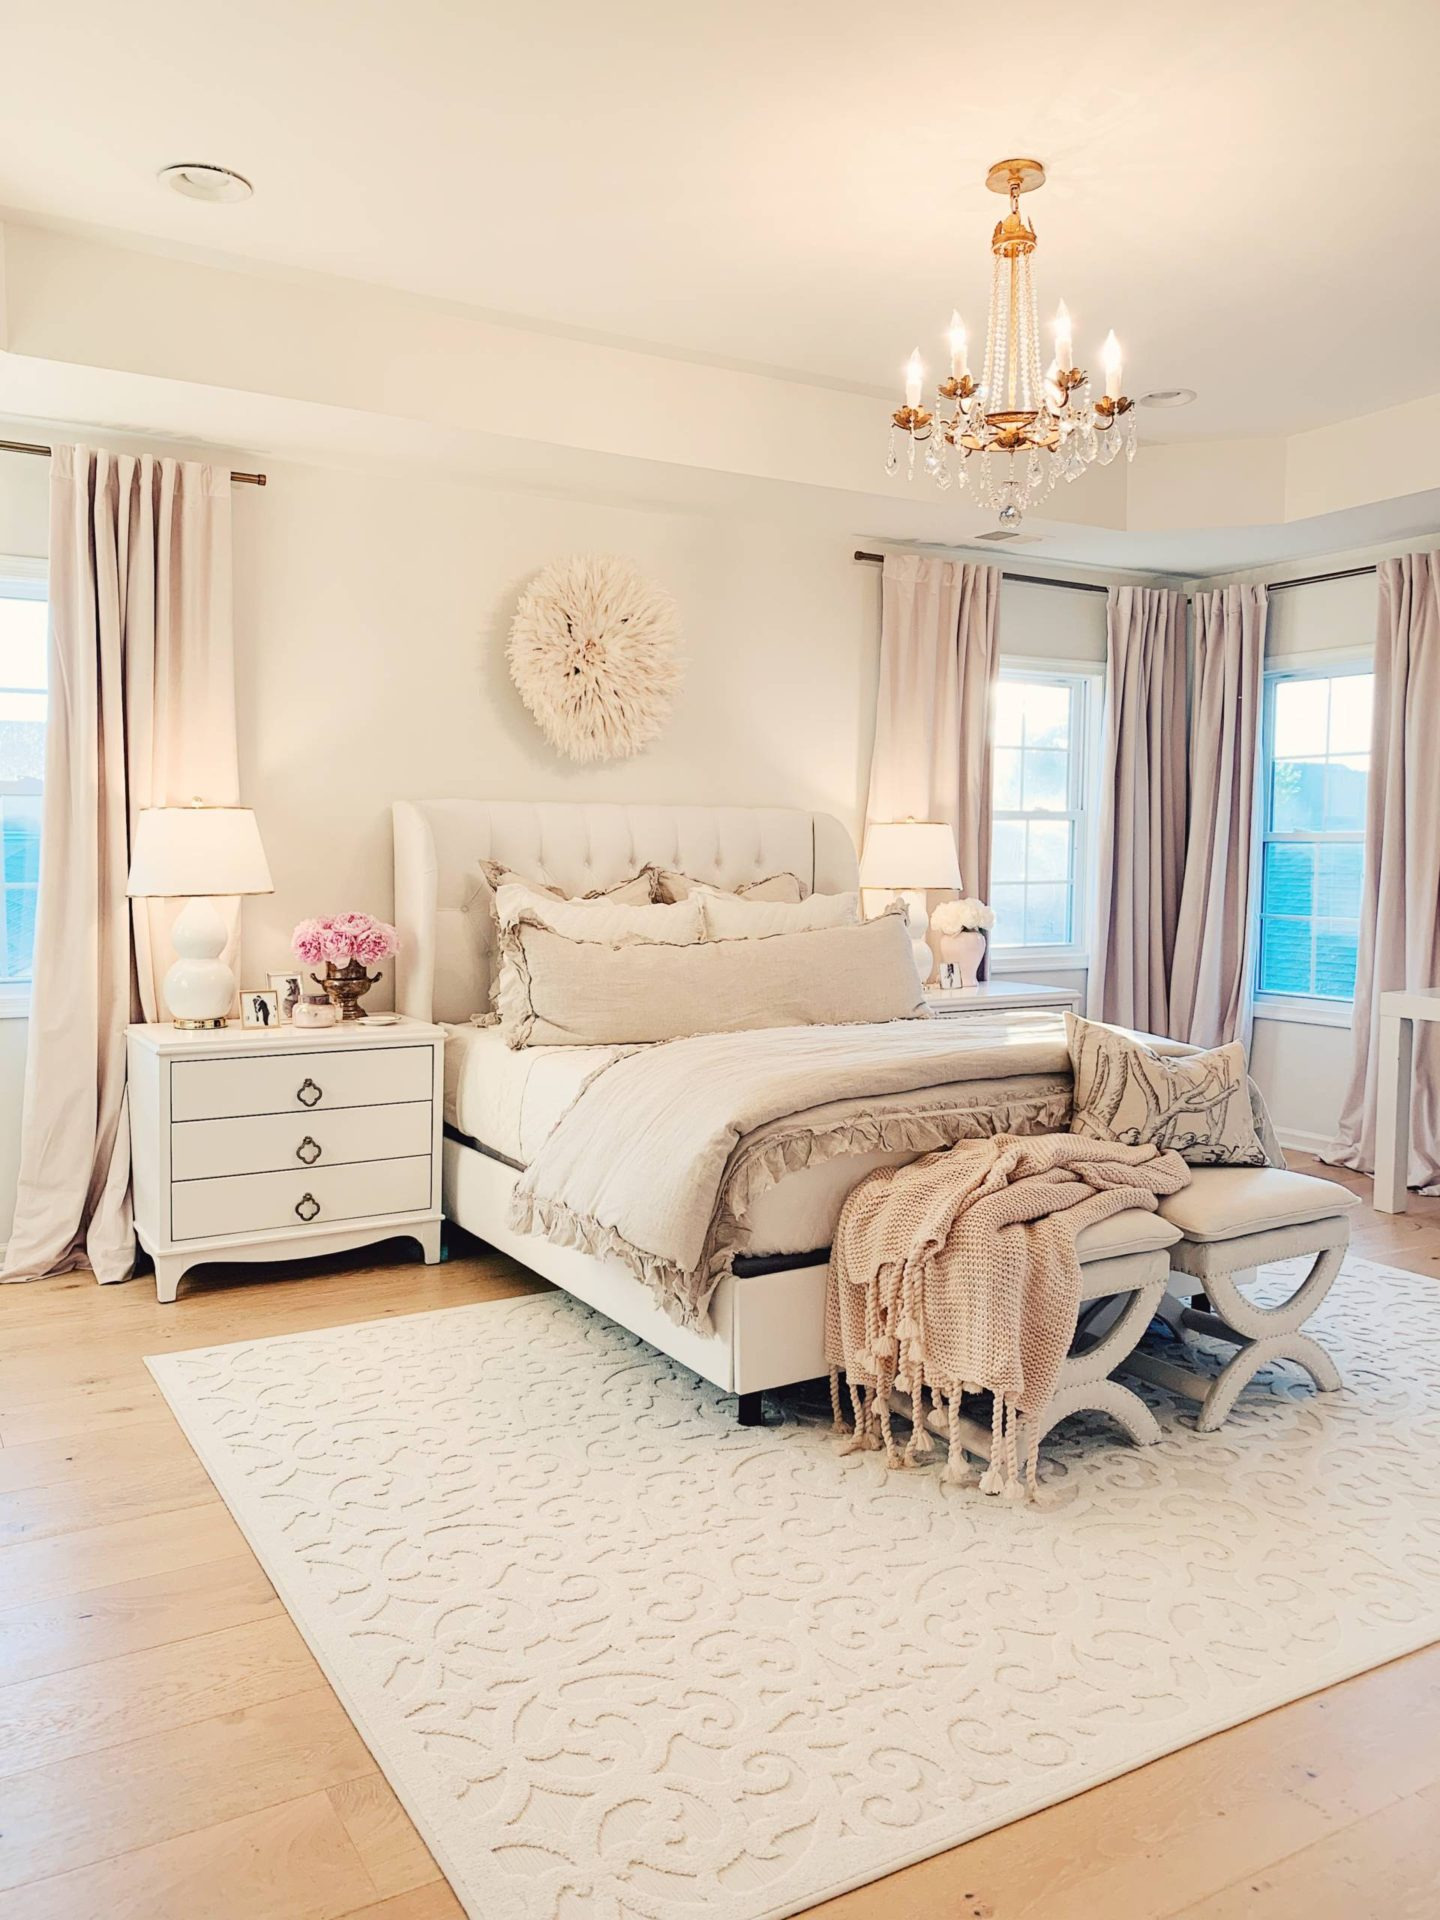 Master Bedroom Decor: a Cozy & Romantic Master Bedroom ... on Master Bedroom Curtains  id=77717